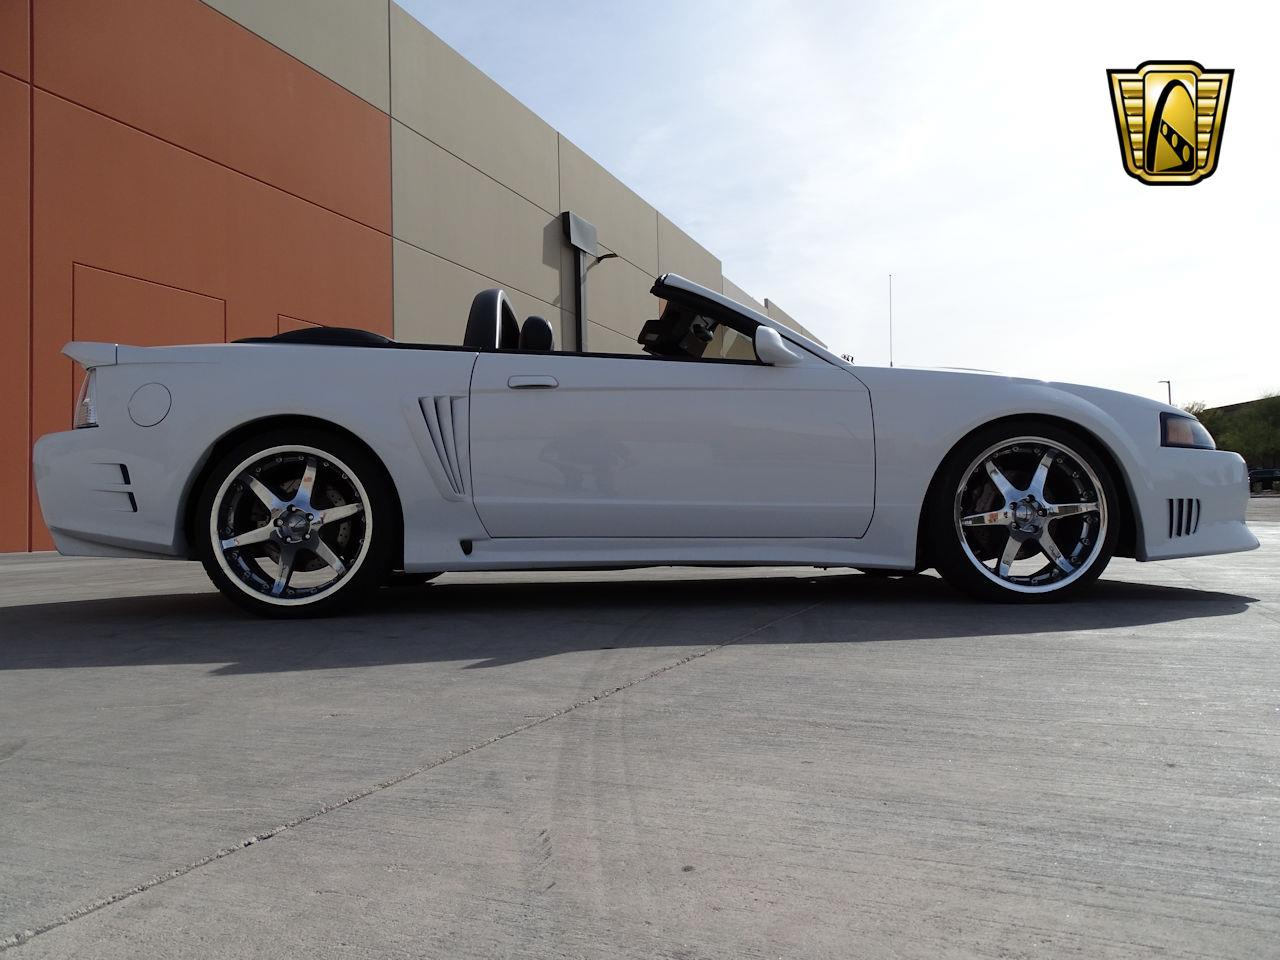 Large Picture of '02 Ford Mustang located in Deer Valley Arizona - $31,995.00 - MZG0